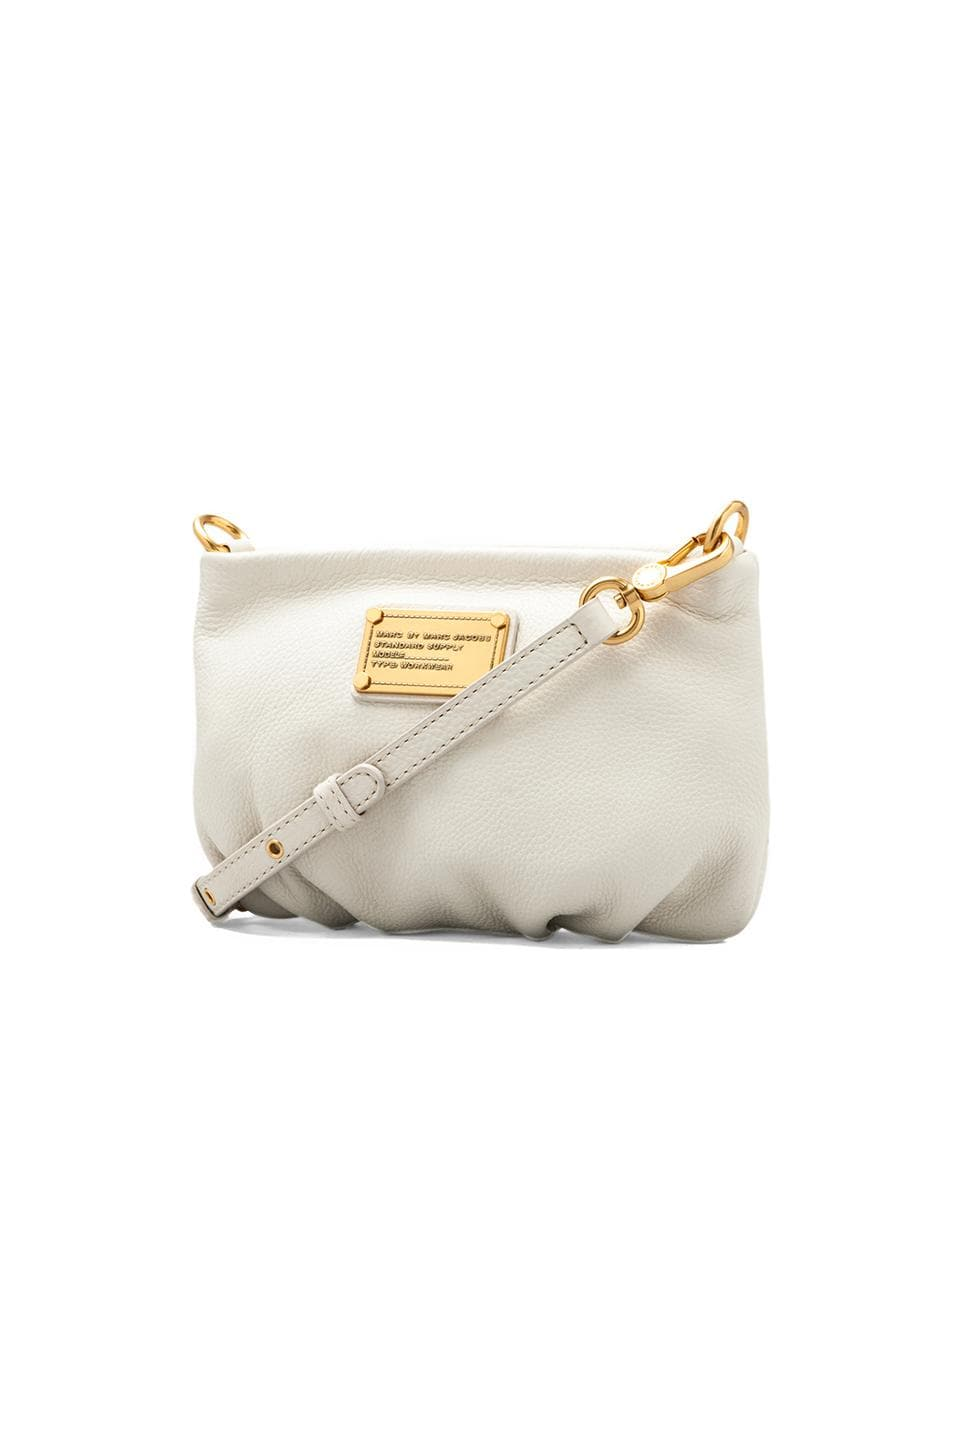 Marc by Marc Jacobs Classic Q Percy in White Birch